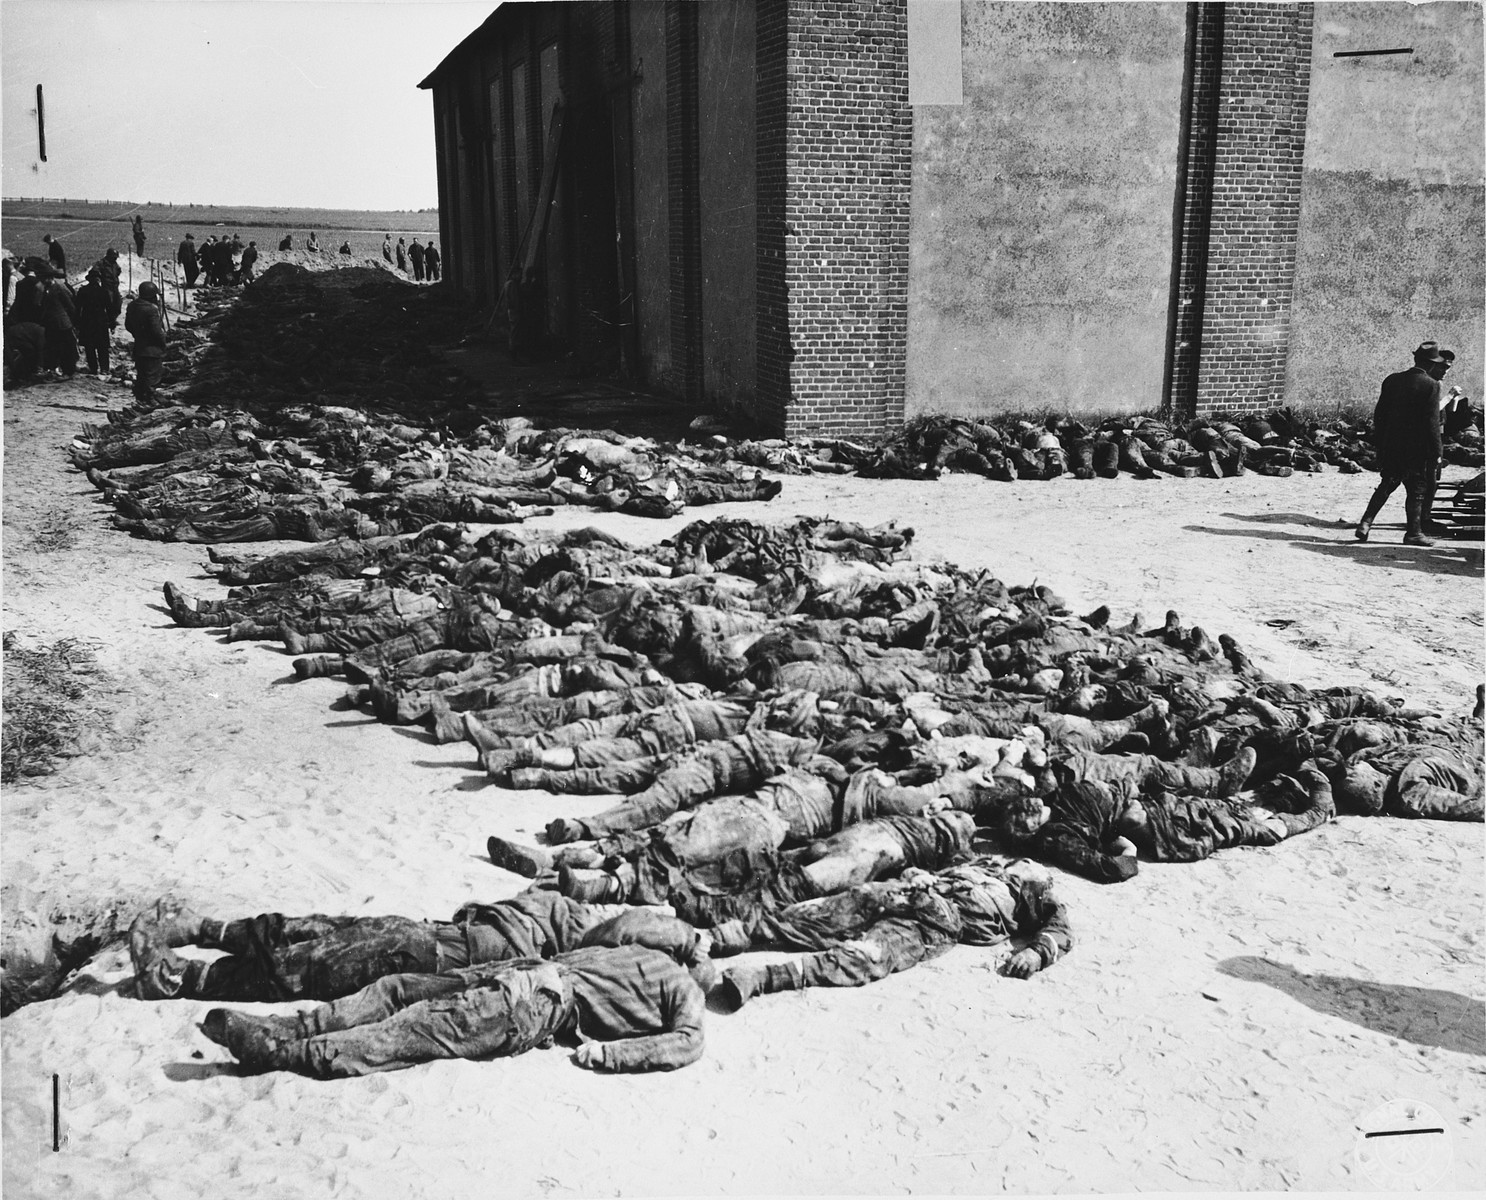 Corpses lined up on the north side of the barn located outside of Gardelegen.  In the background, American soldiers supervise German civilians as they exhume corpses from a mass grave.